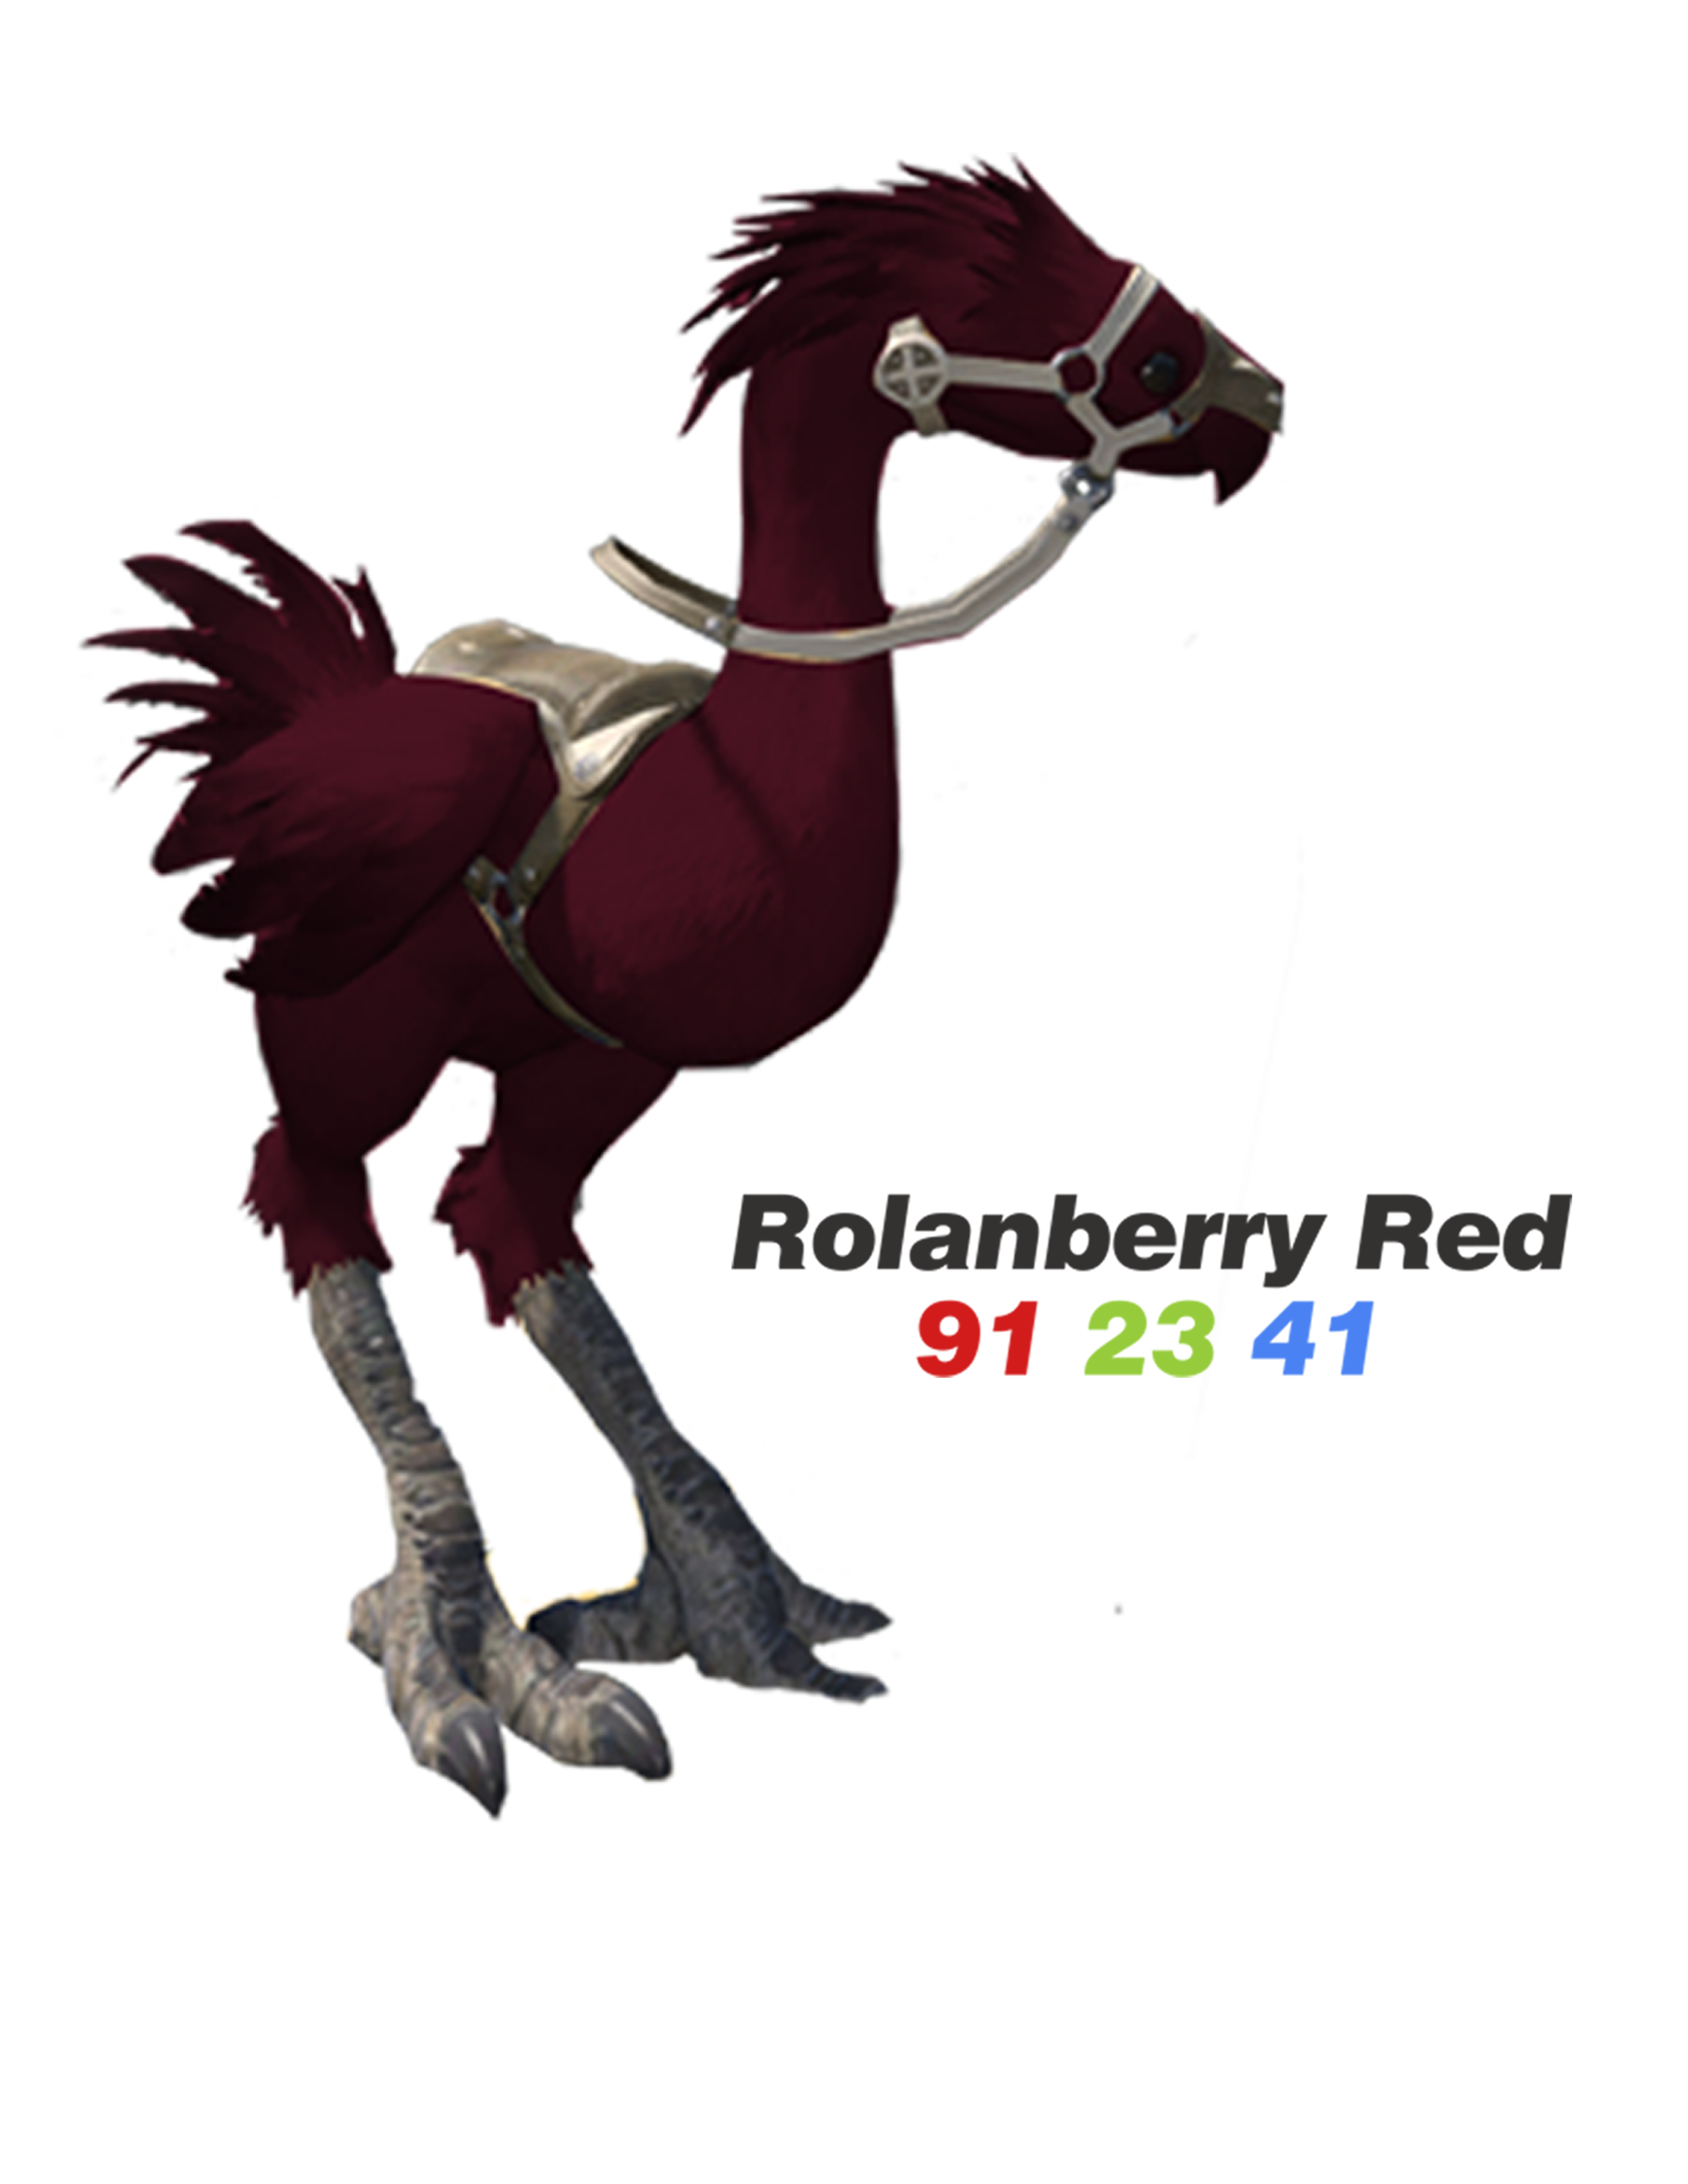 RolanberryRed.png